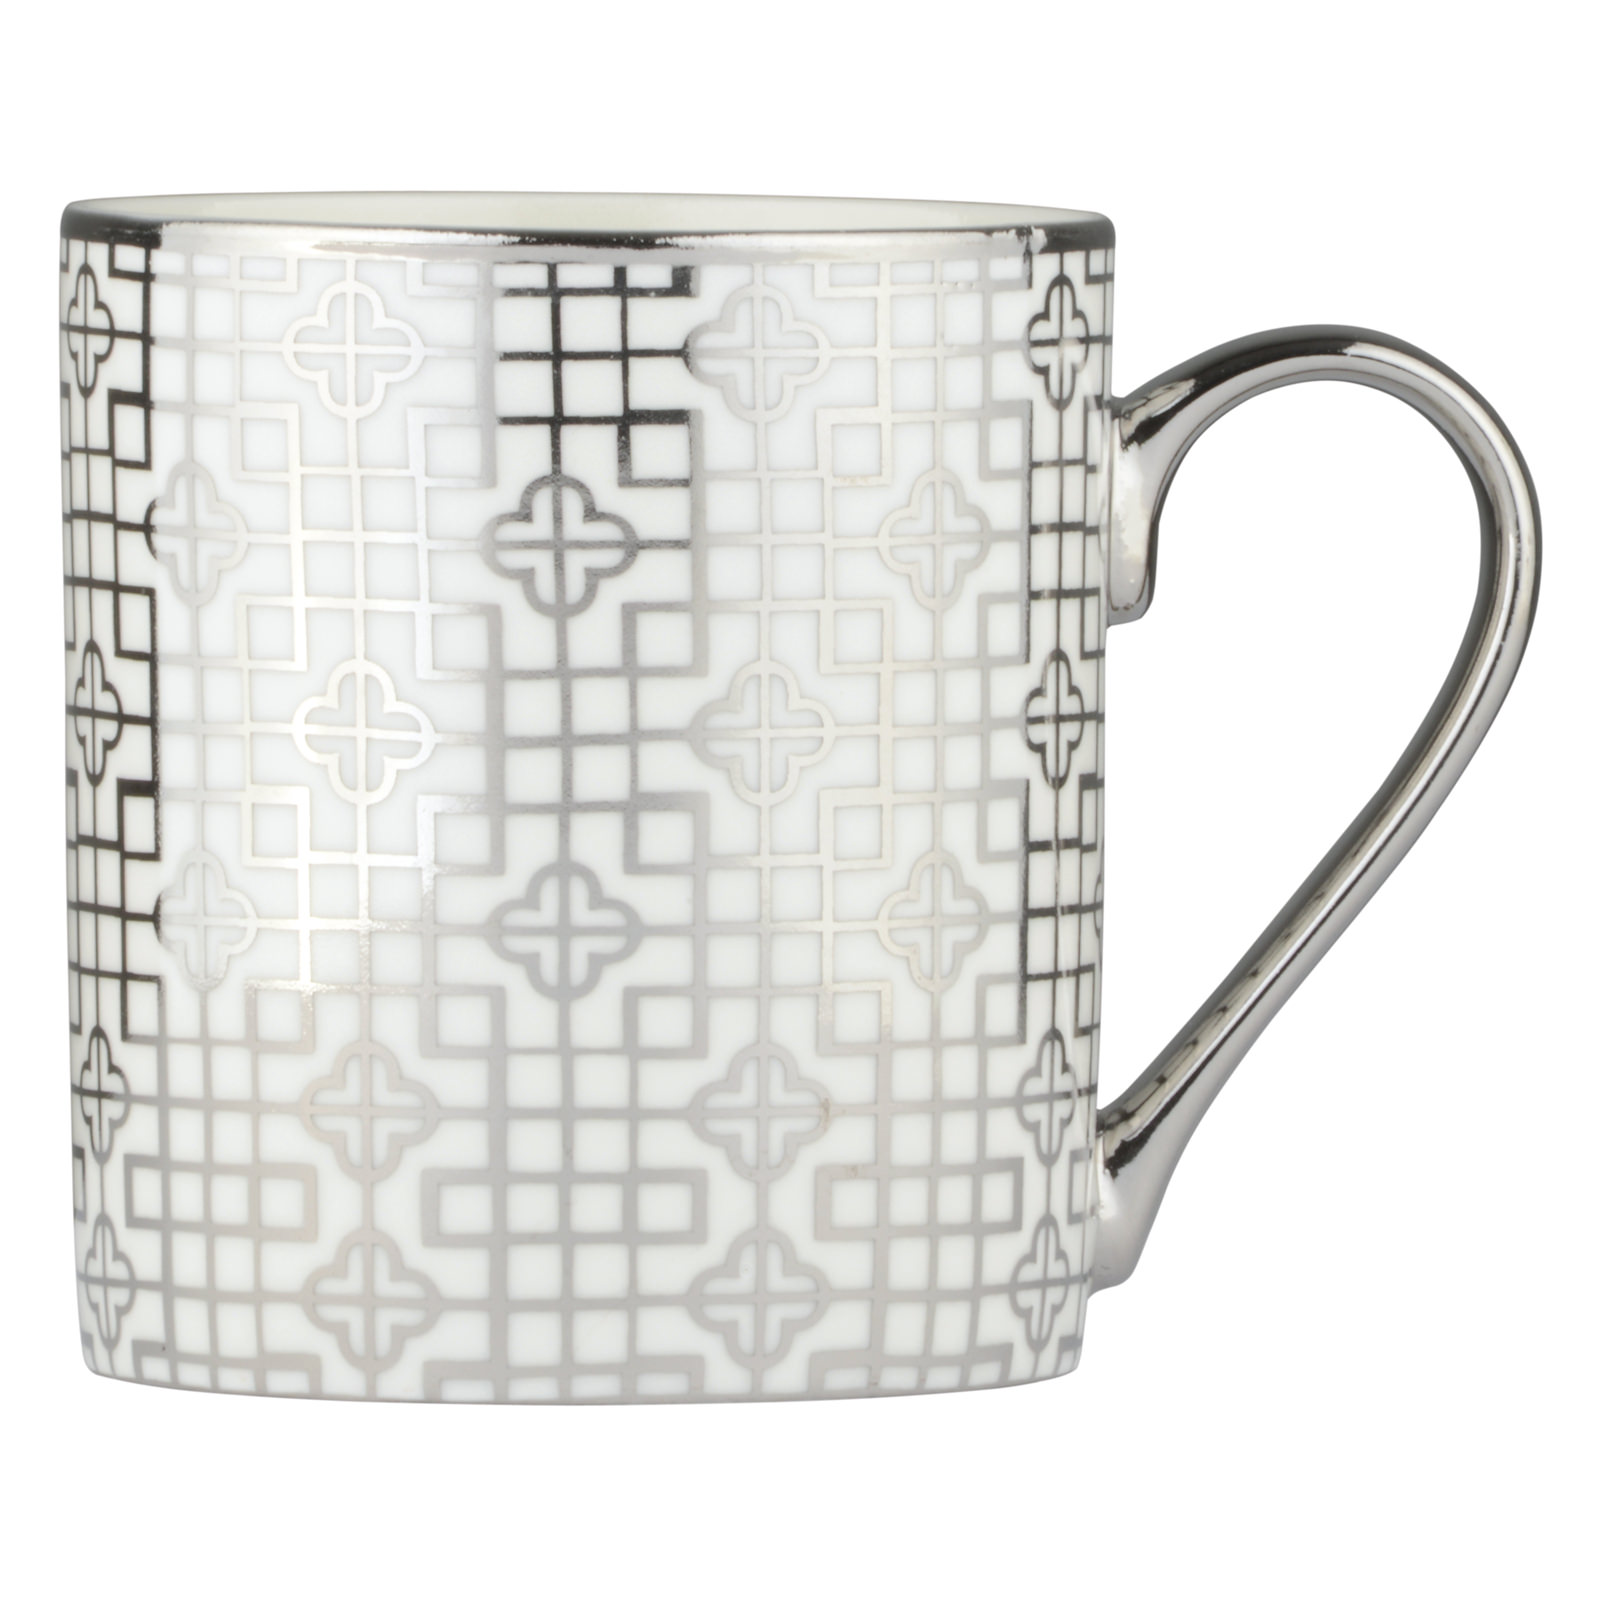 Deco Mug Art Deco Mug Platinum The Drh Collection